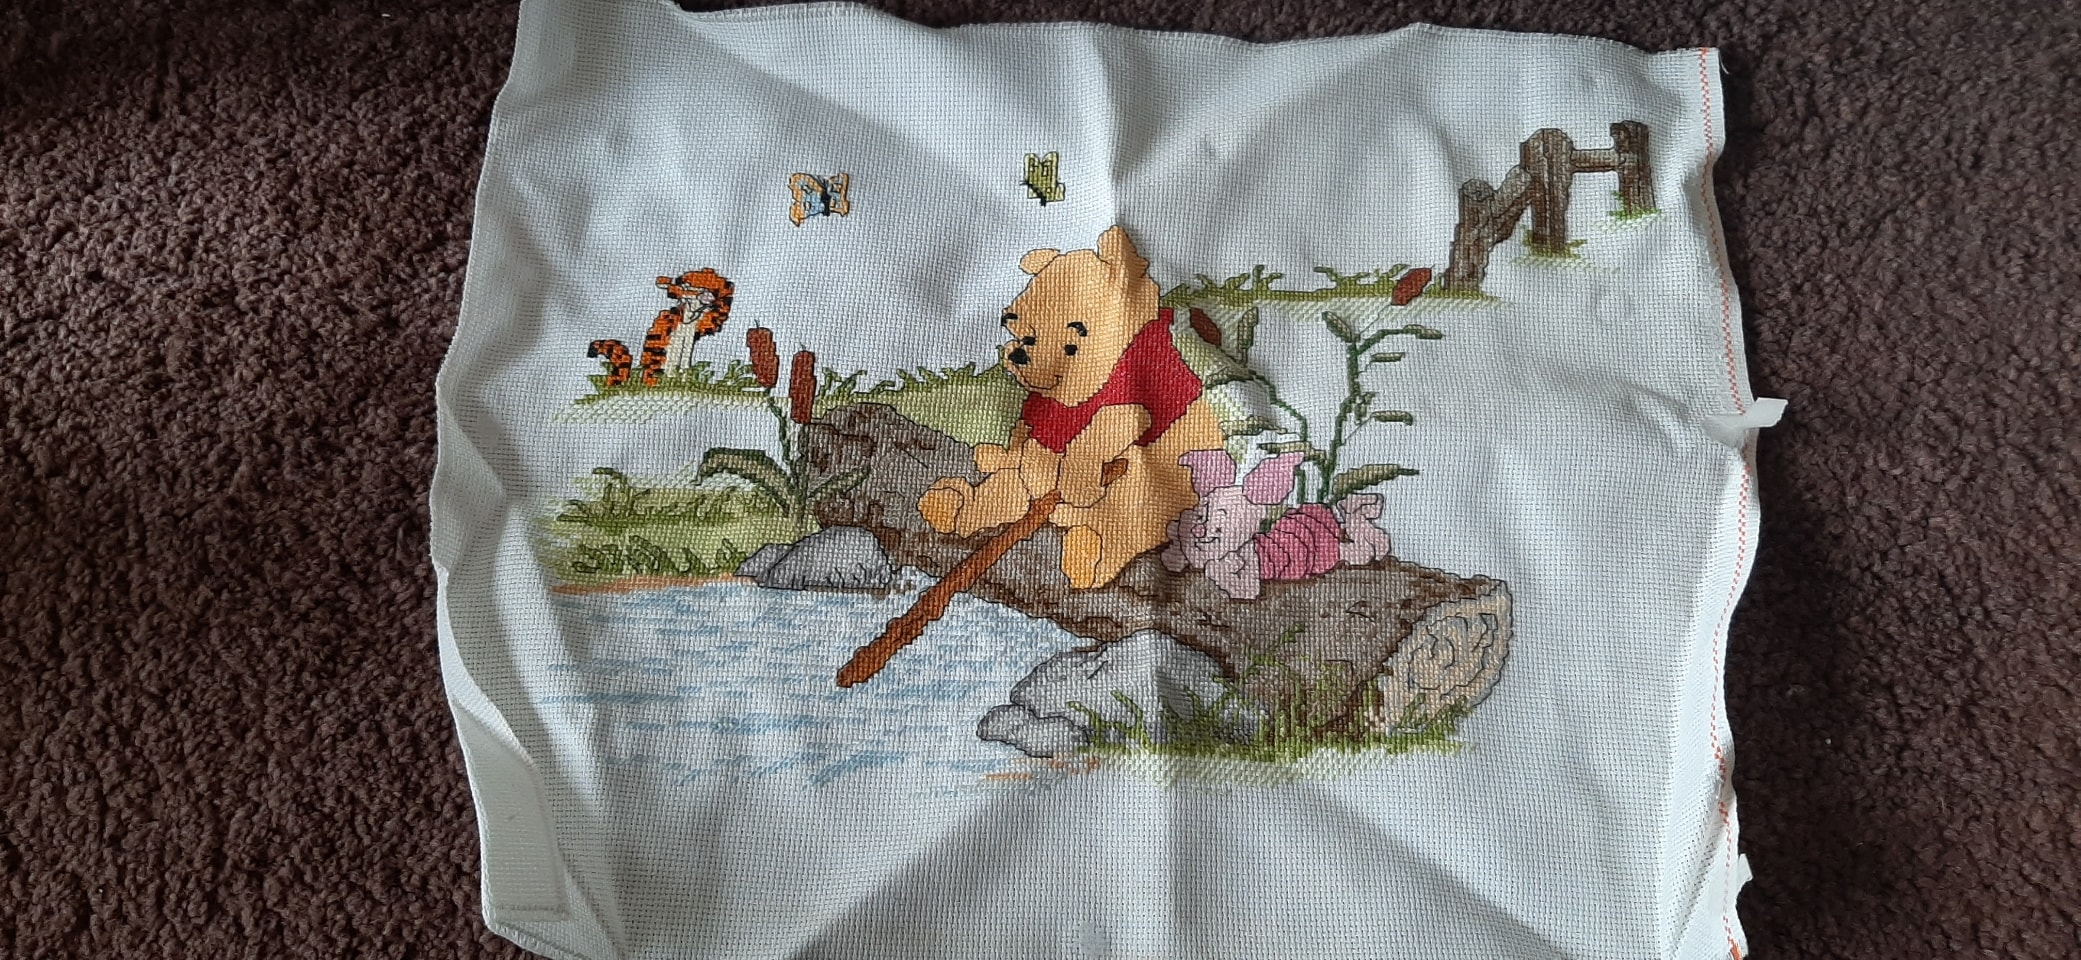 completed Pooh cross stitch